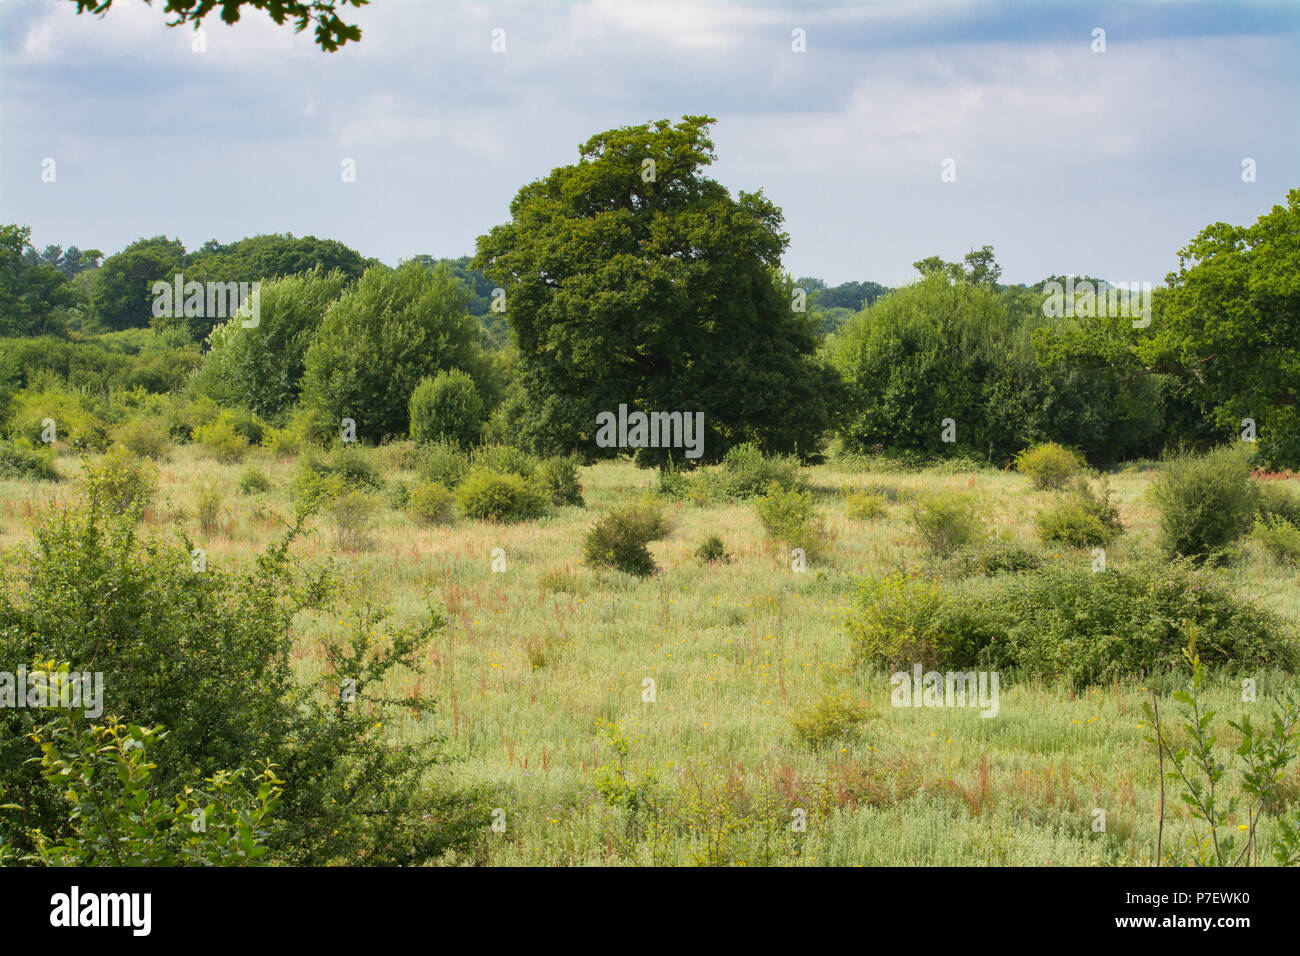 view-from-a-tree-platform-over-the-knepp-estate-wildland-a-rewilding-conservation-project-taking-place-in-west-sussex-uk-in-summer-P7EWK0.jpg